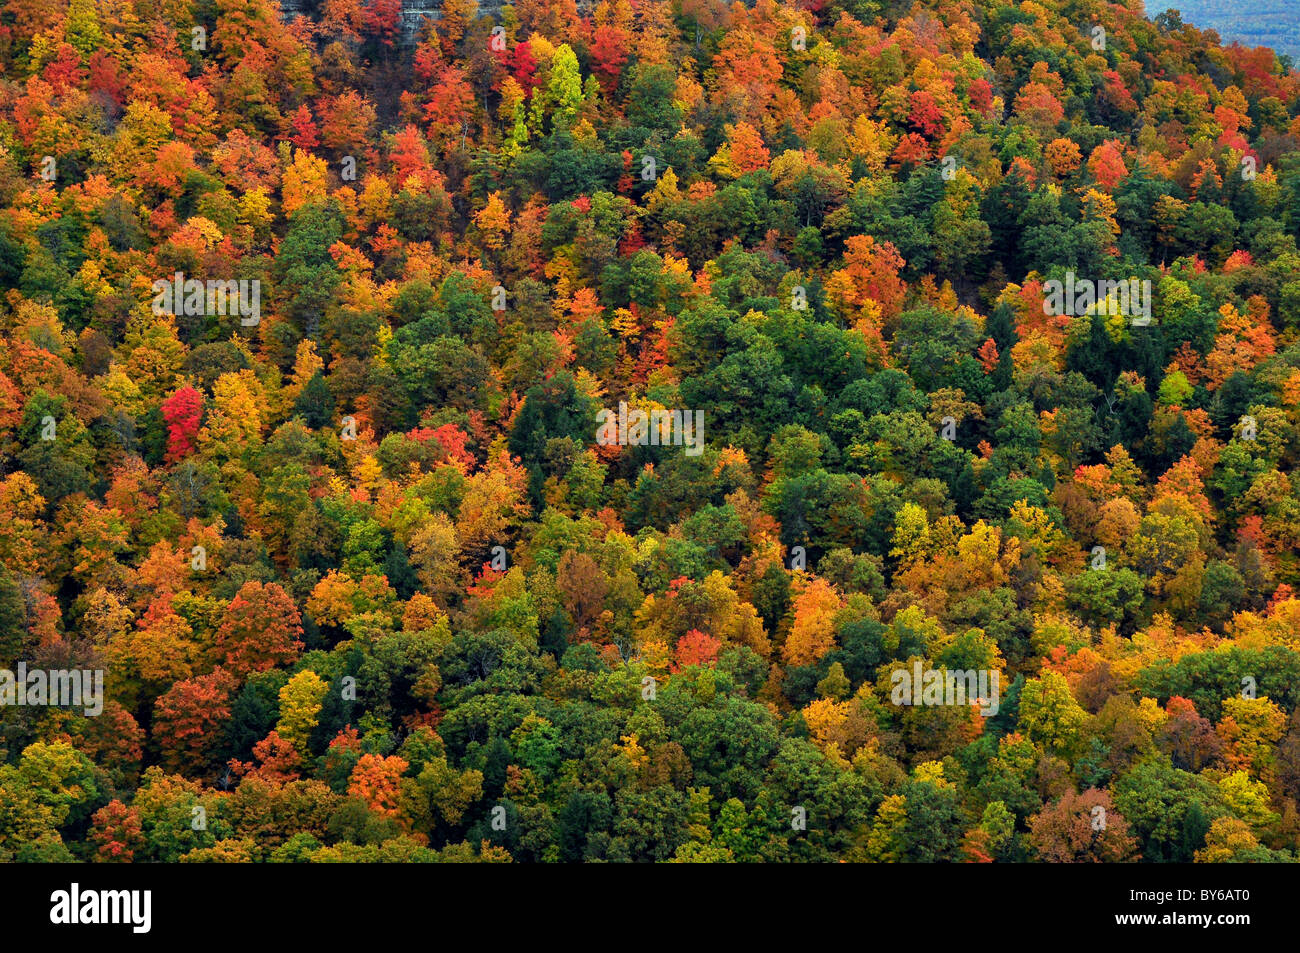 Fall Colors in Upstate New York - Stock Image